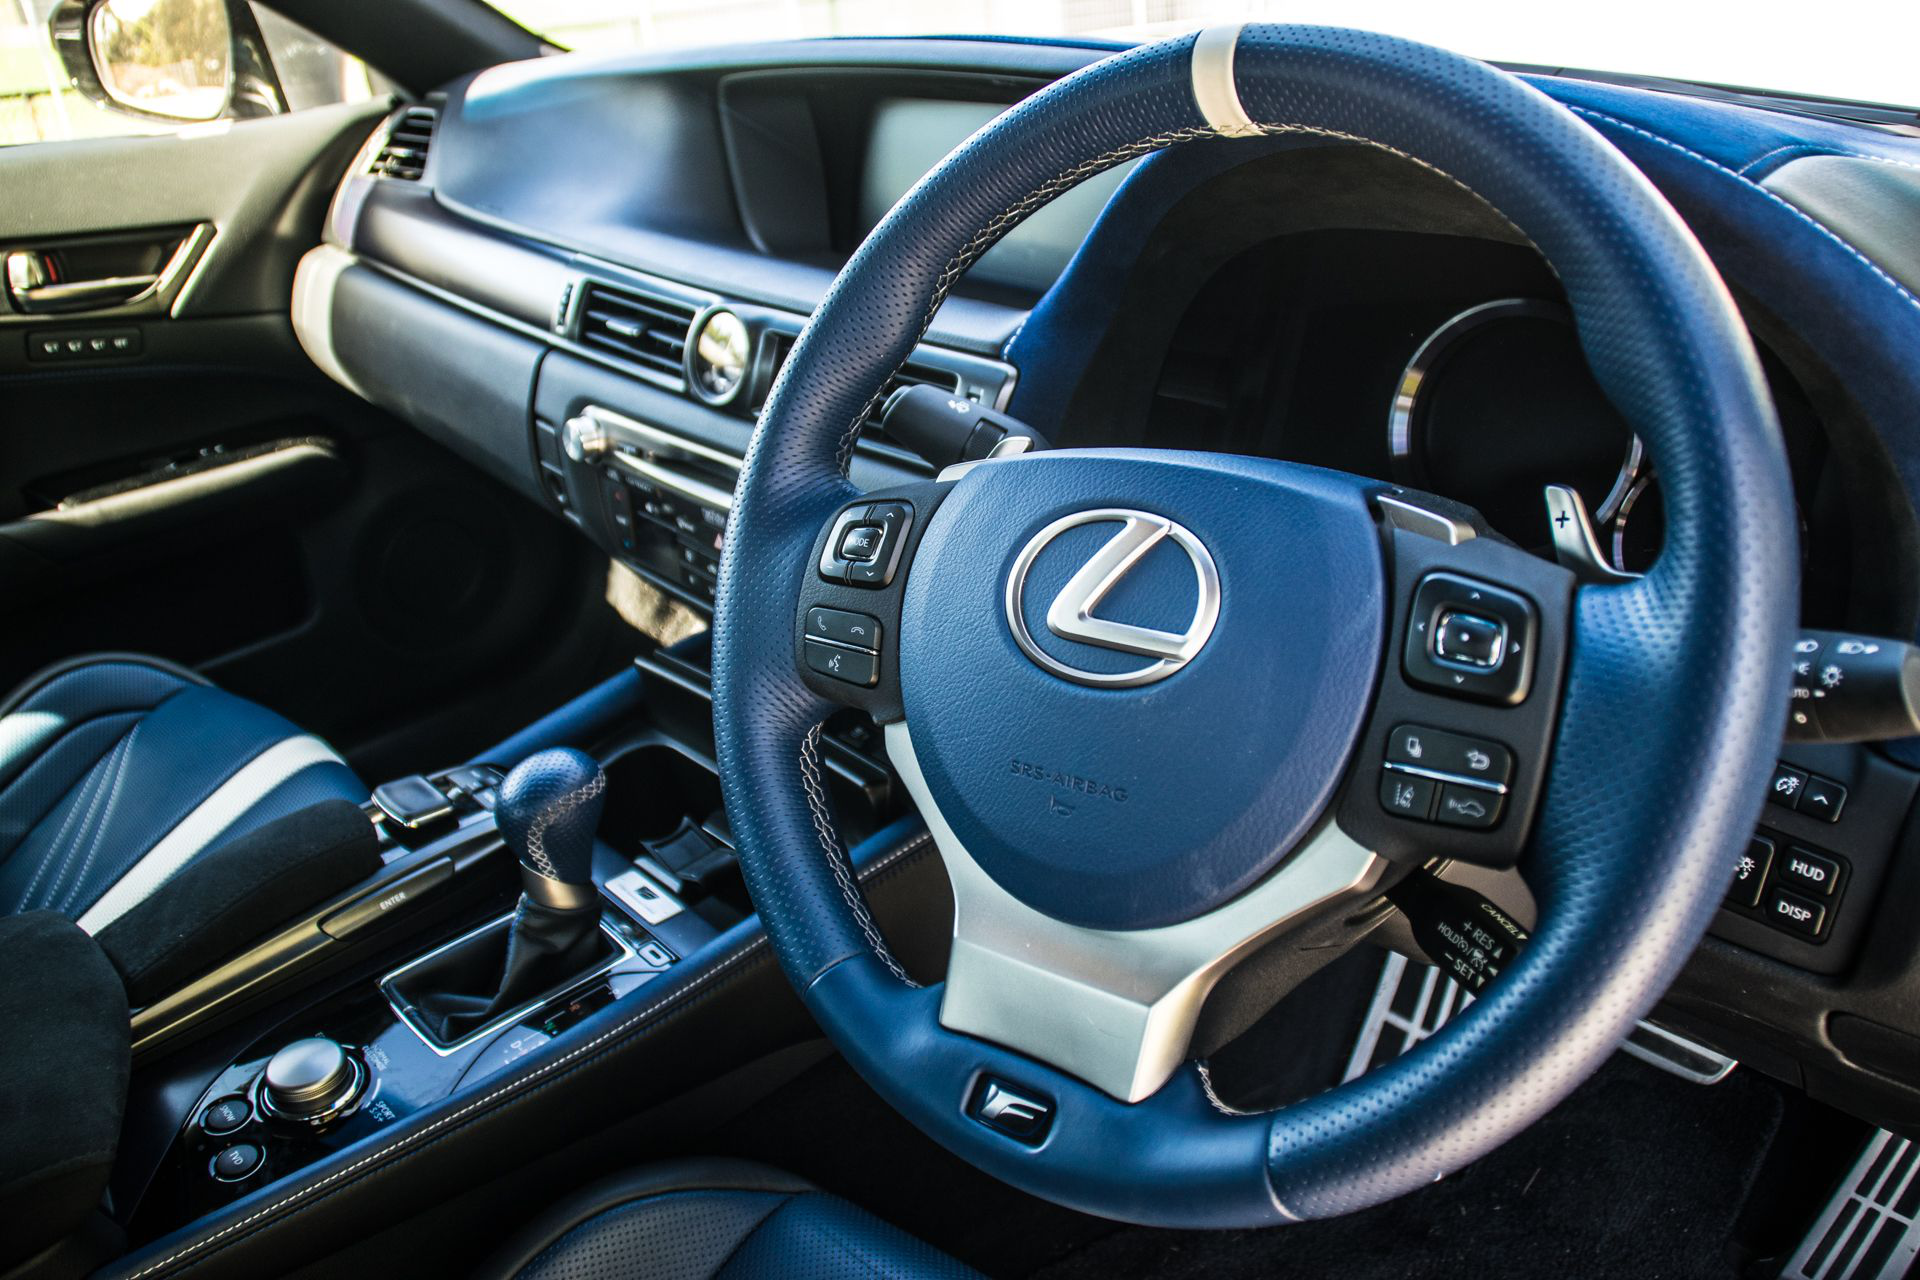 Understanding The Interior Of The Lexus Gs F Requires A Phd Carmojo The Lexus Gs F Has More Than 100 Buttons Switches Lexus Lexus Interior Premium Cars